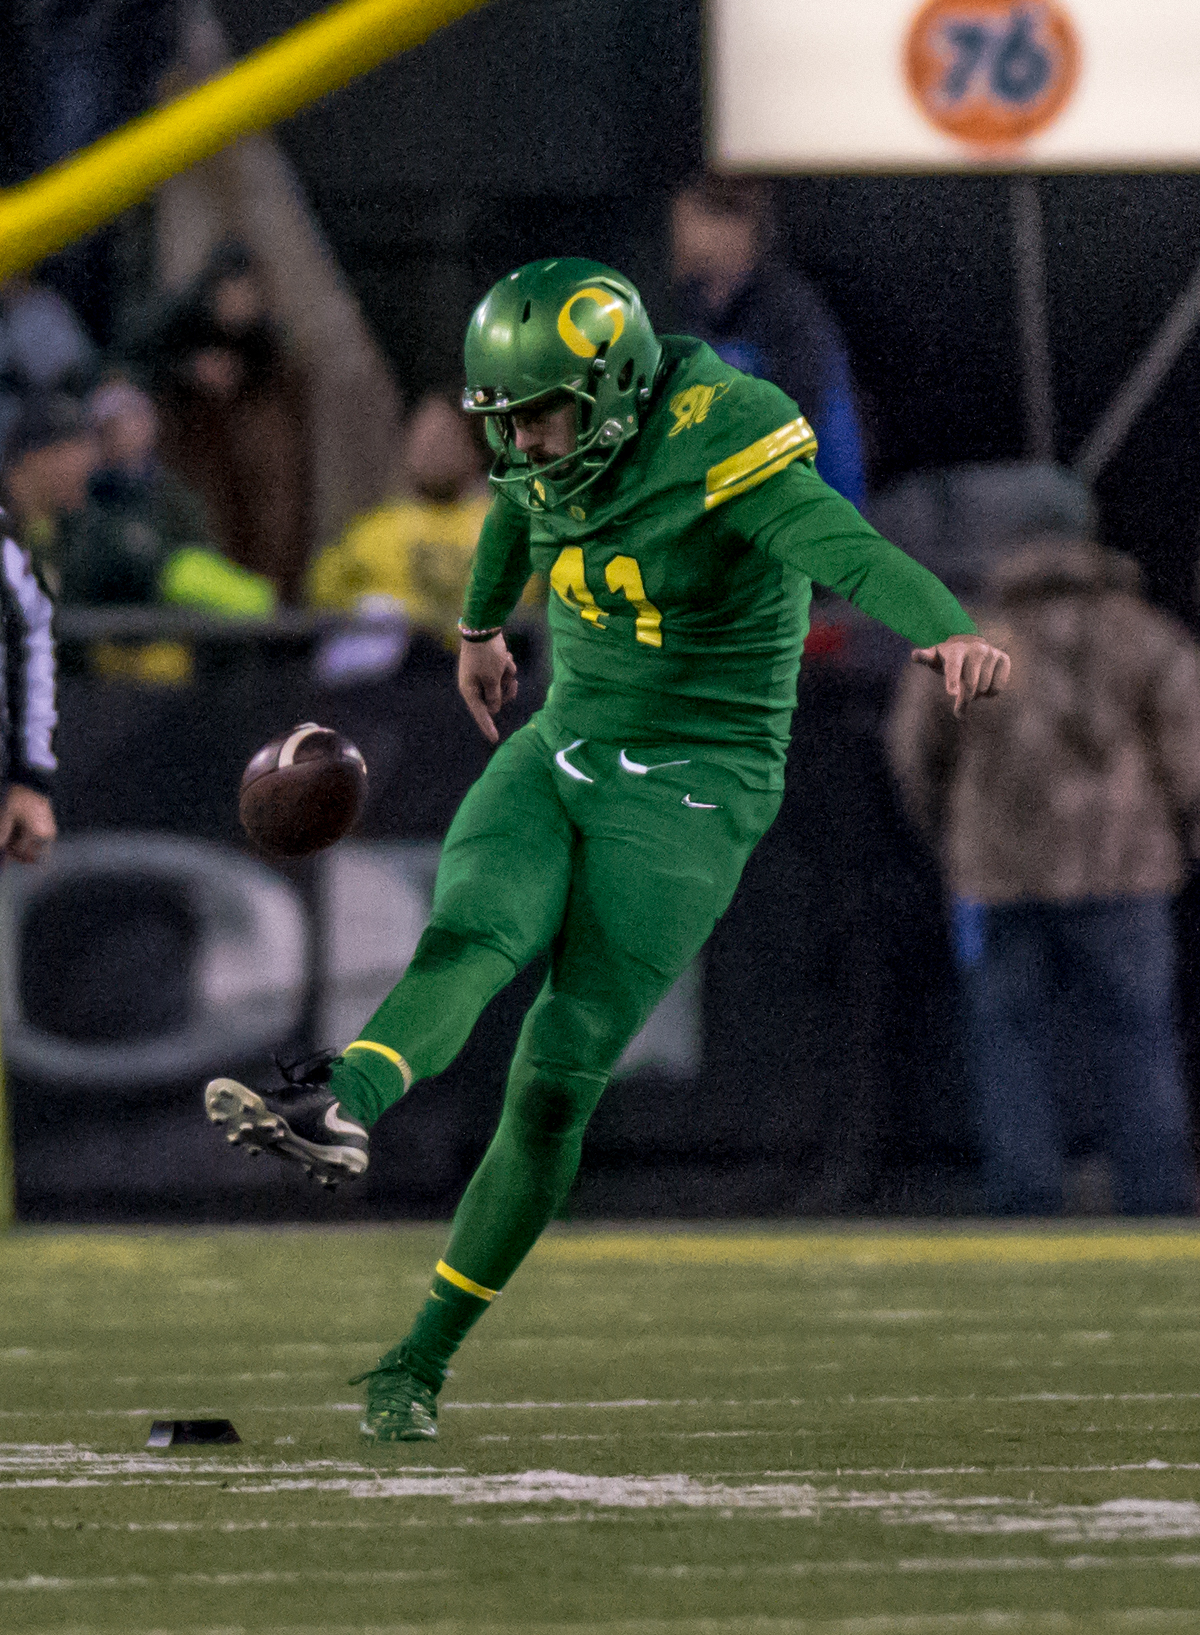 Oregon kicker Aidan Schneider (#41) kicks off the ball during the second half. The Oregon Ducks defeated the Oregon State Beavers 69 to 10 in the 121st Civil War game at Autzen Stadium in Eugene, Ore. on Saturday November 25, 2017. Photo by Ben Lonergan, Oregon News Lab